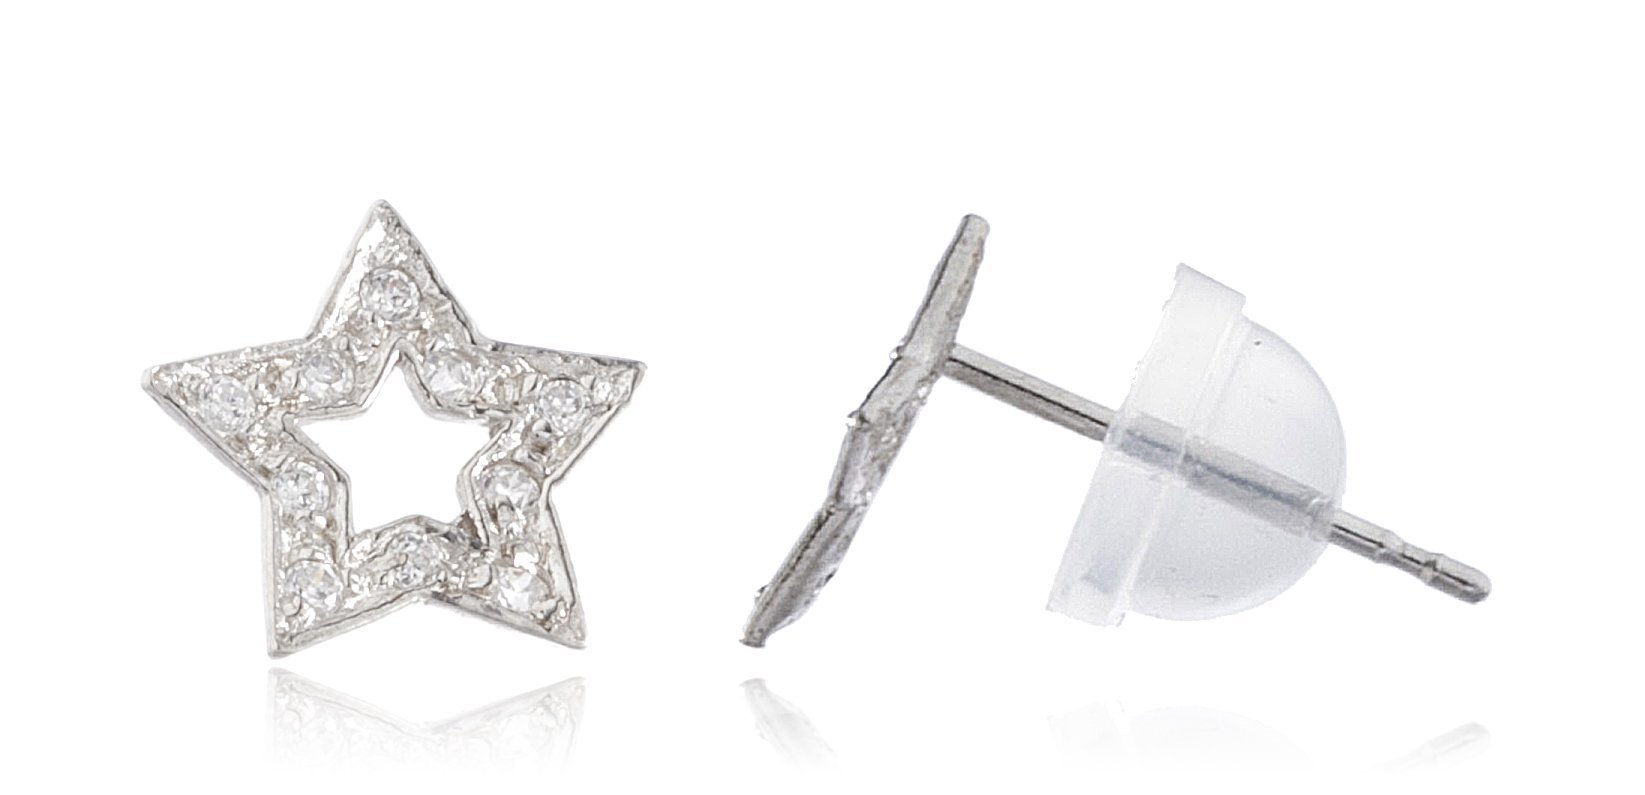 14k White Gold 5-point Star with Cz Stones Stud Earrings With Silicone Back (GO-825)